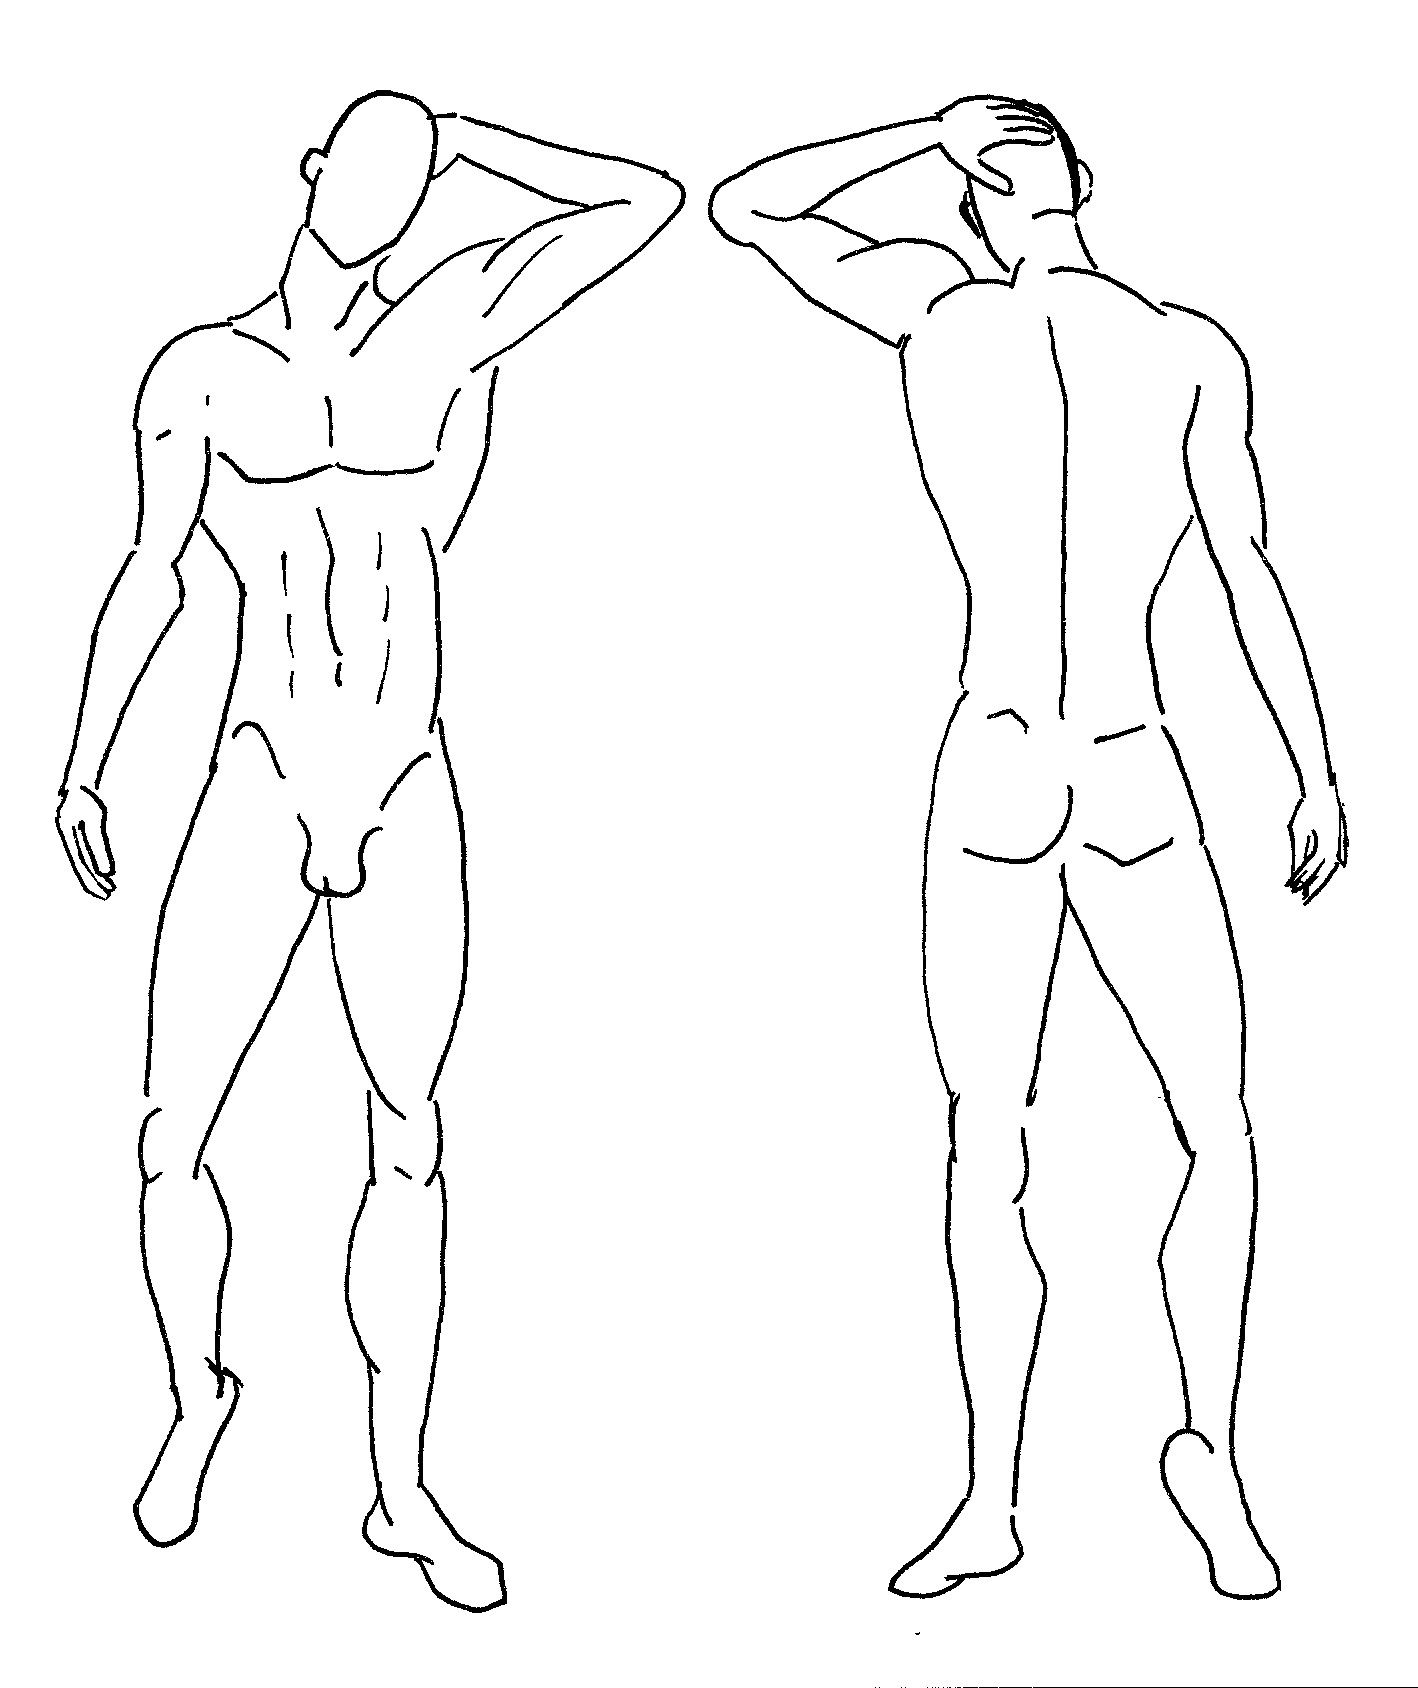 croquis template male - Google Search